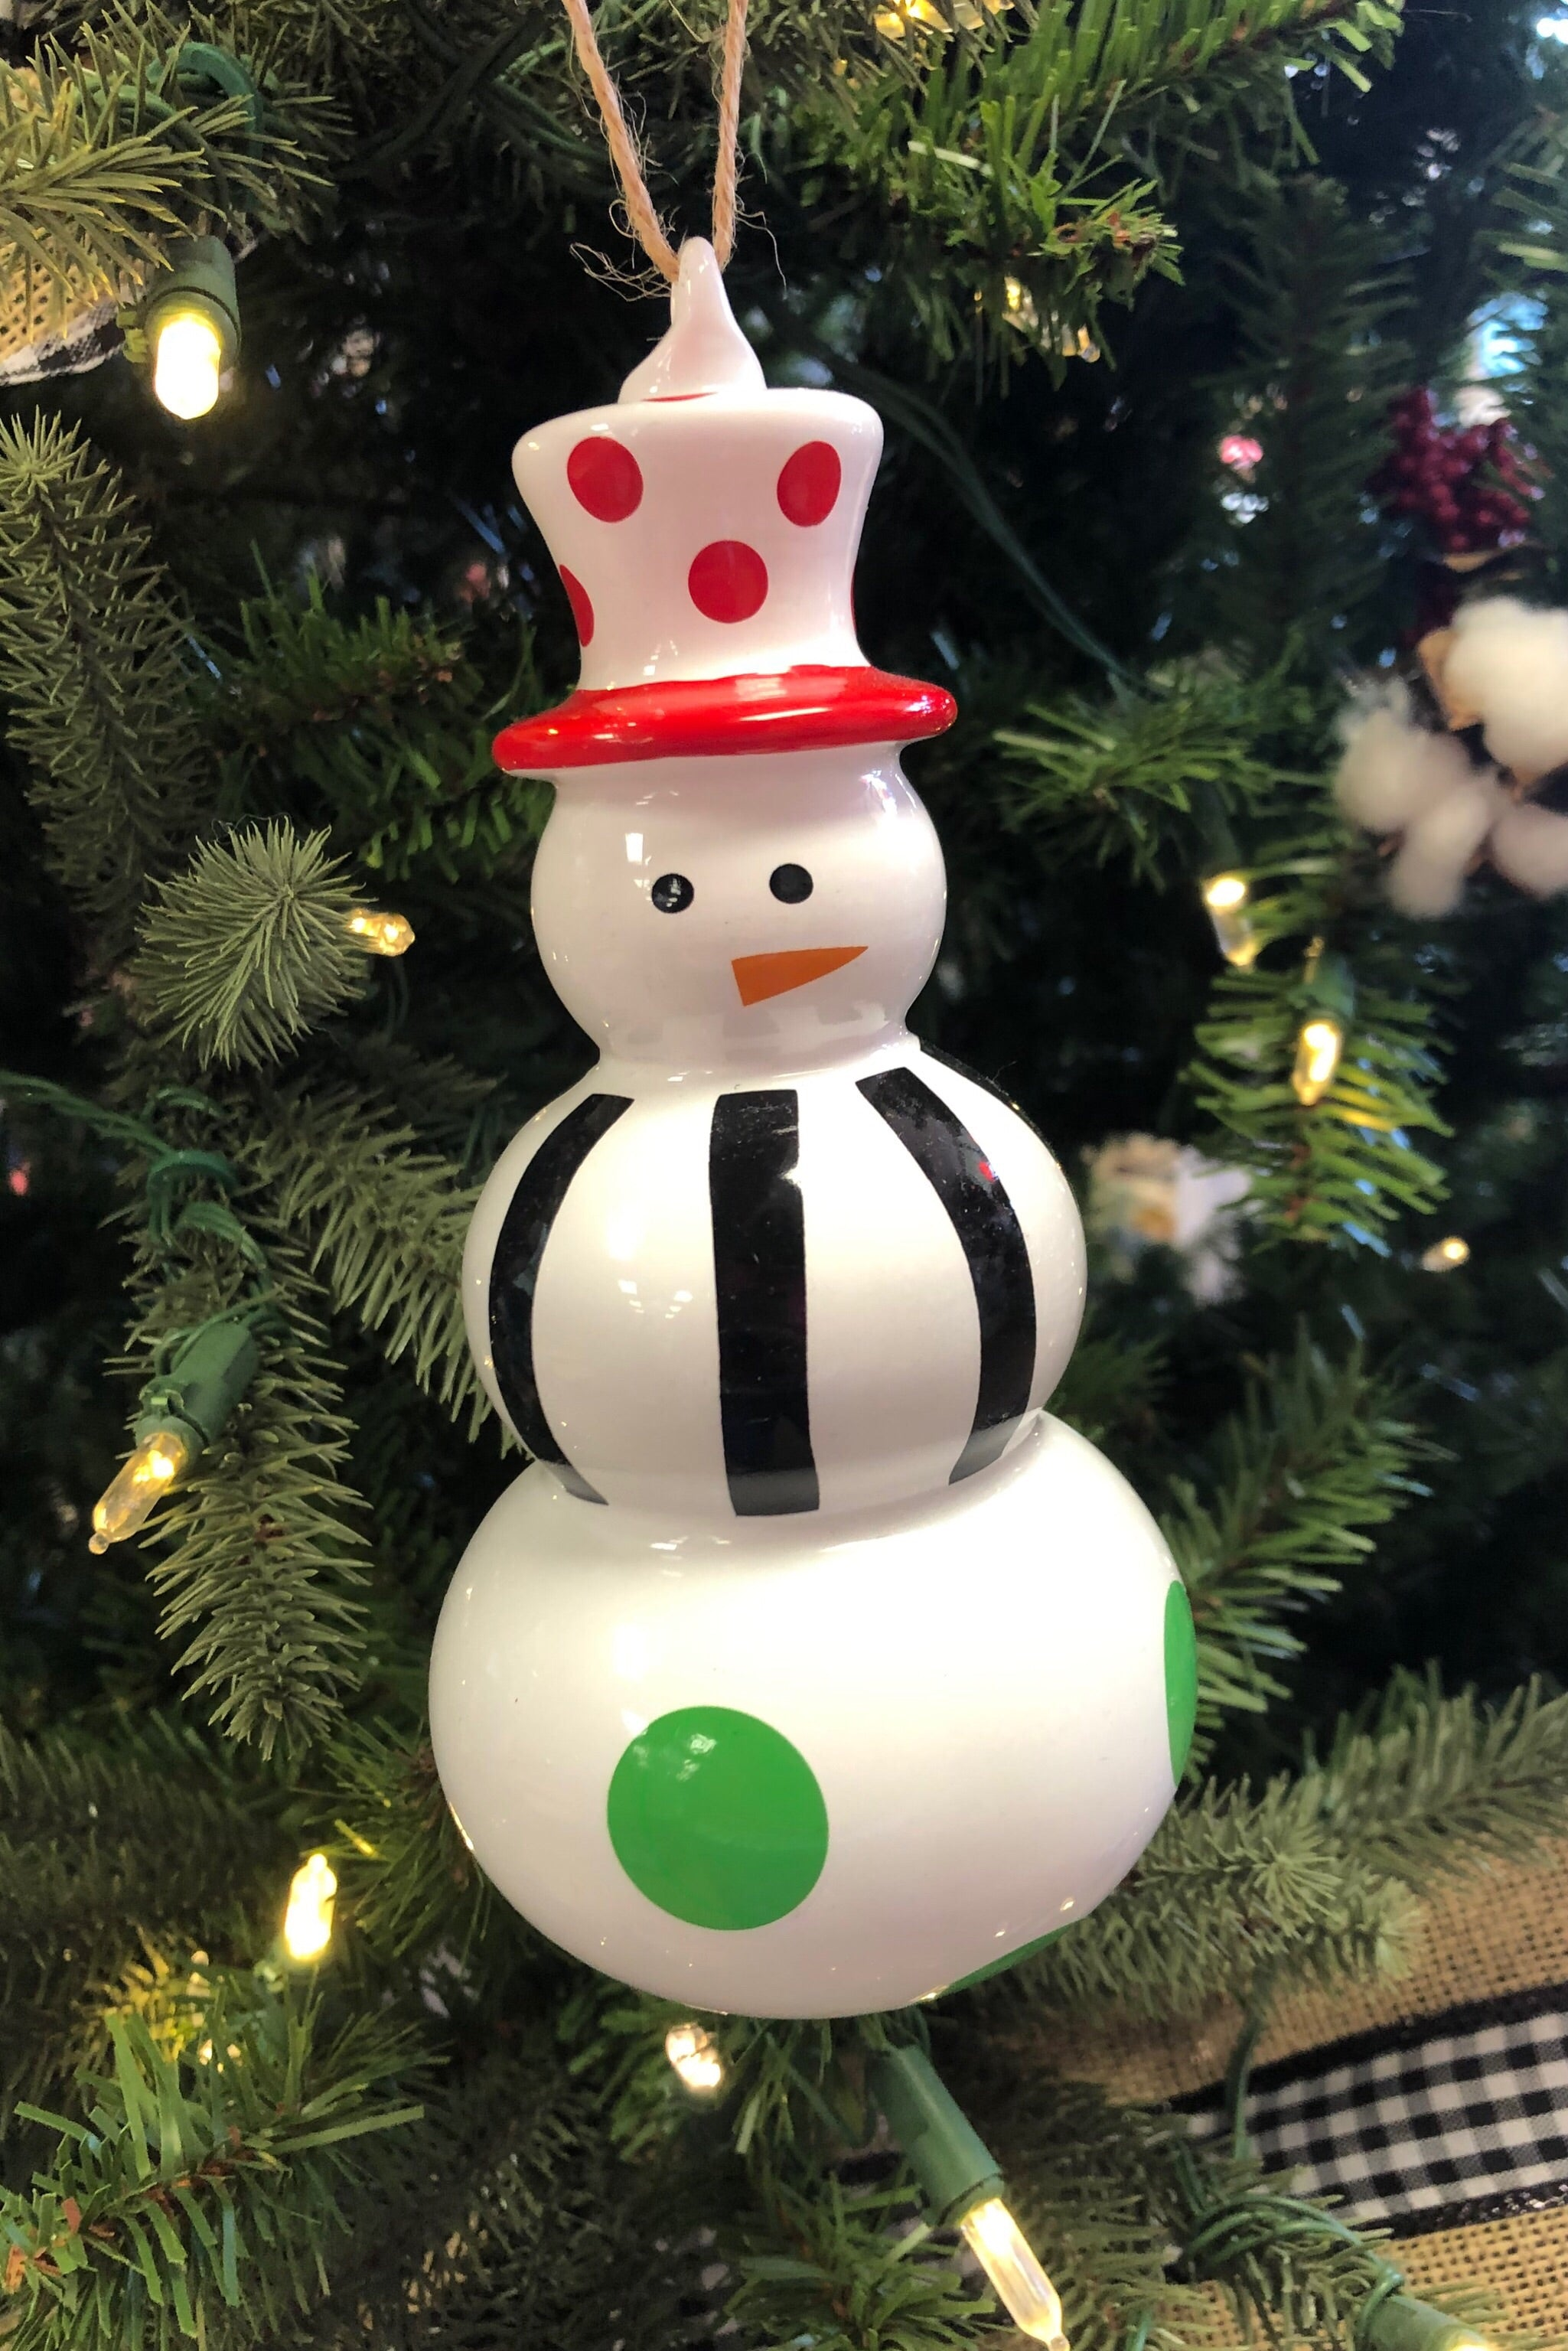 Whimsical Snowman Ornaments